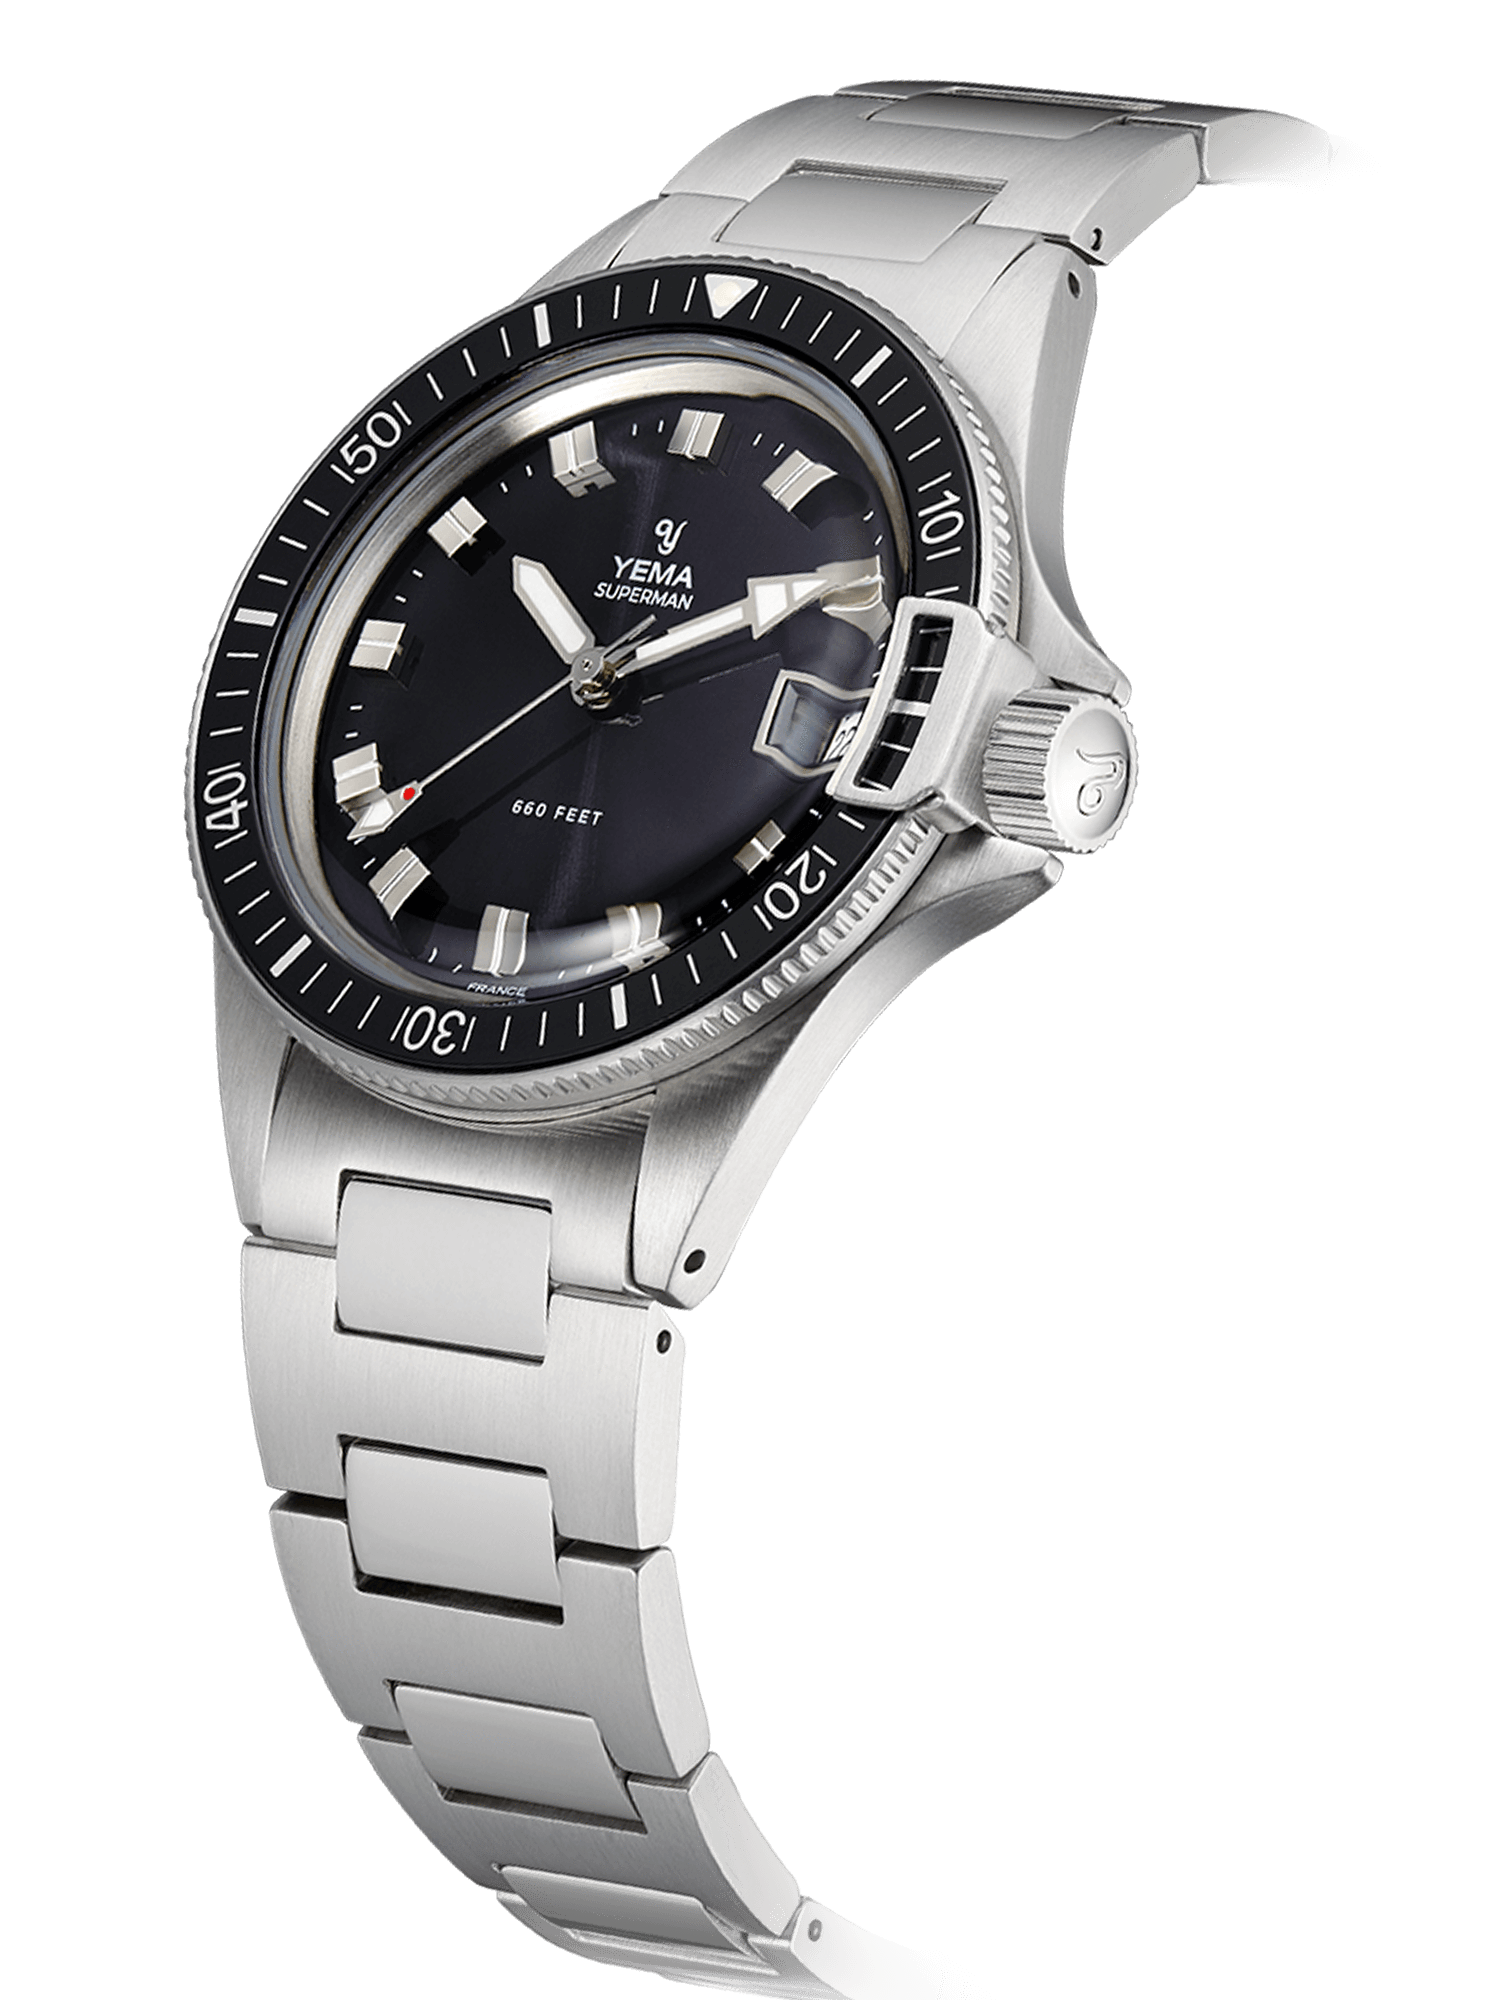 YEMA Superman Heritage black quartz, steel diving bezel-lock, domed mineral crystal.